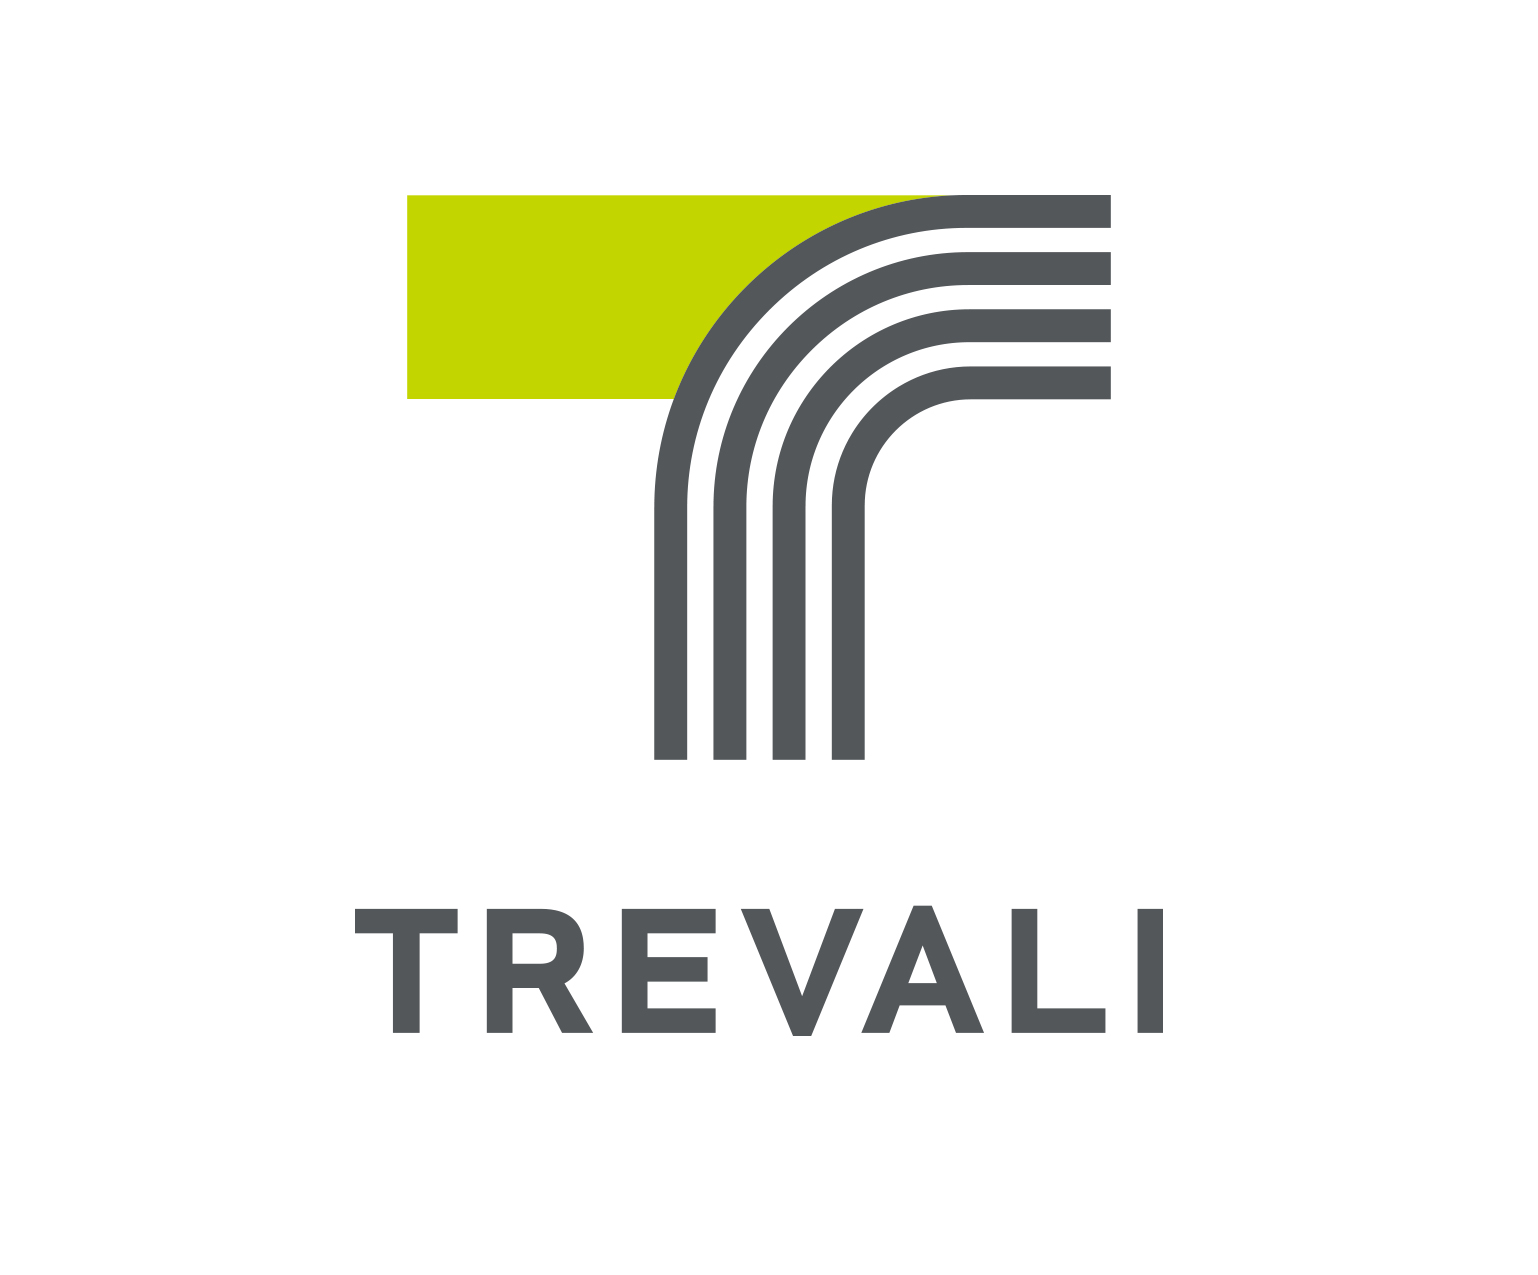 Trevali Announces Drill Results along the North Limb at Caribou Mine Extending Mineralization to the North